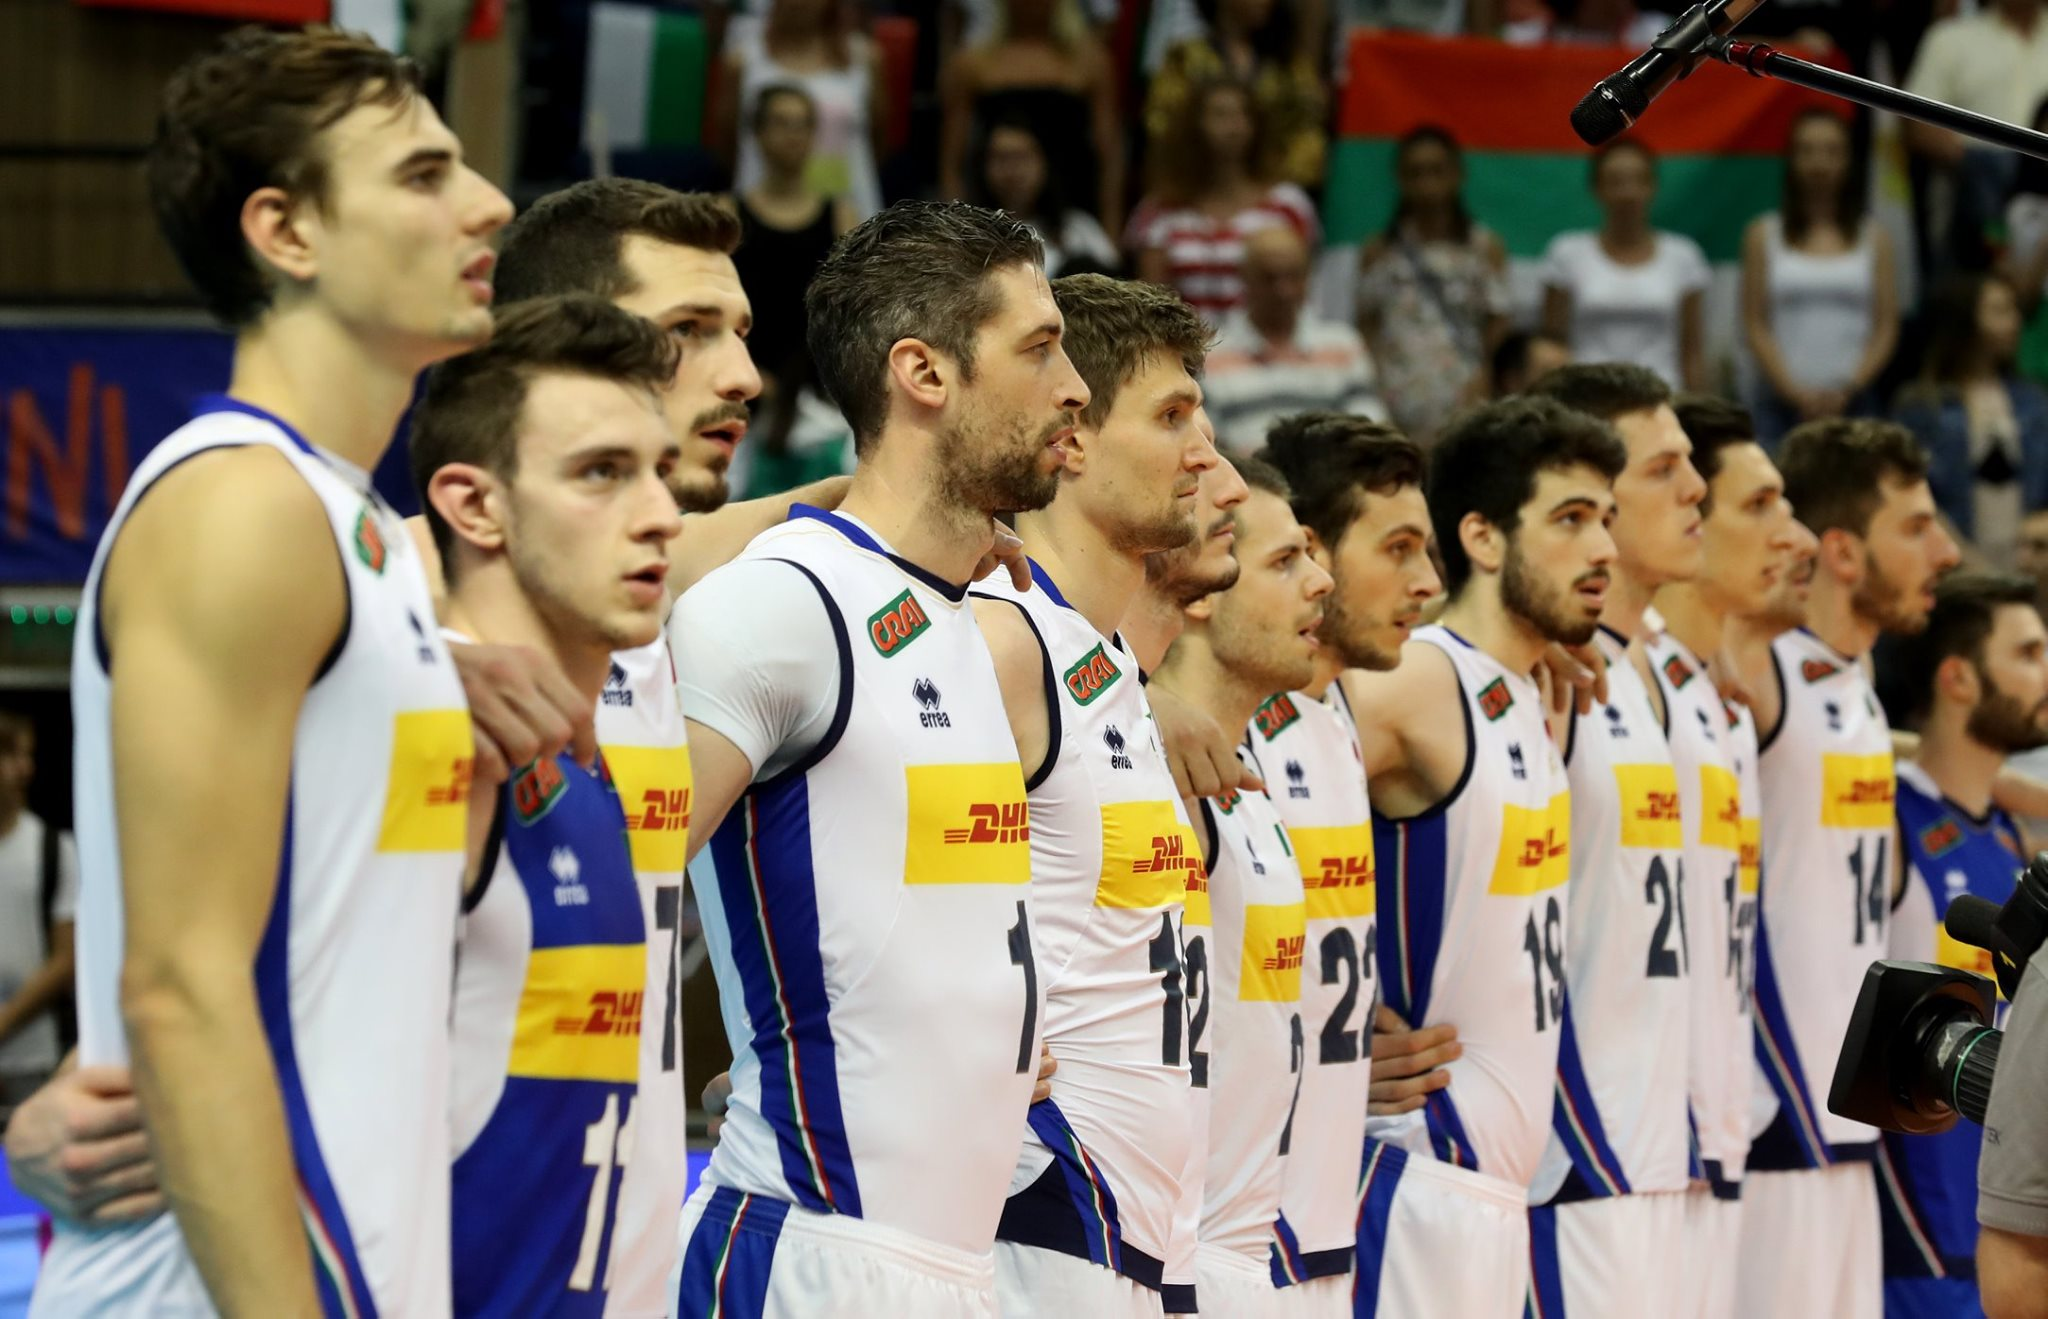 Calendario Vnl Maschile 2020.Blog Problemi Di Volley